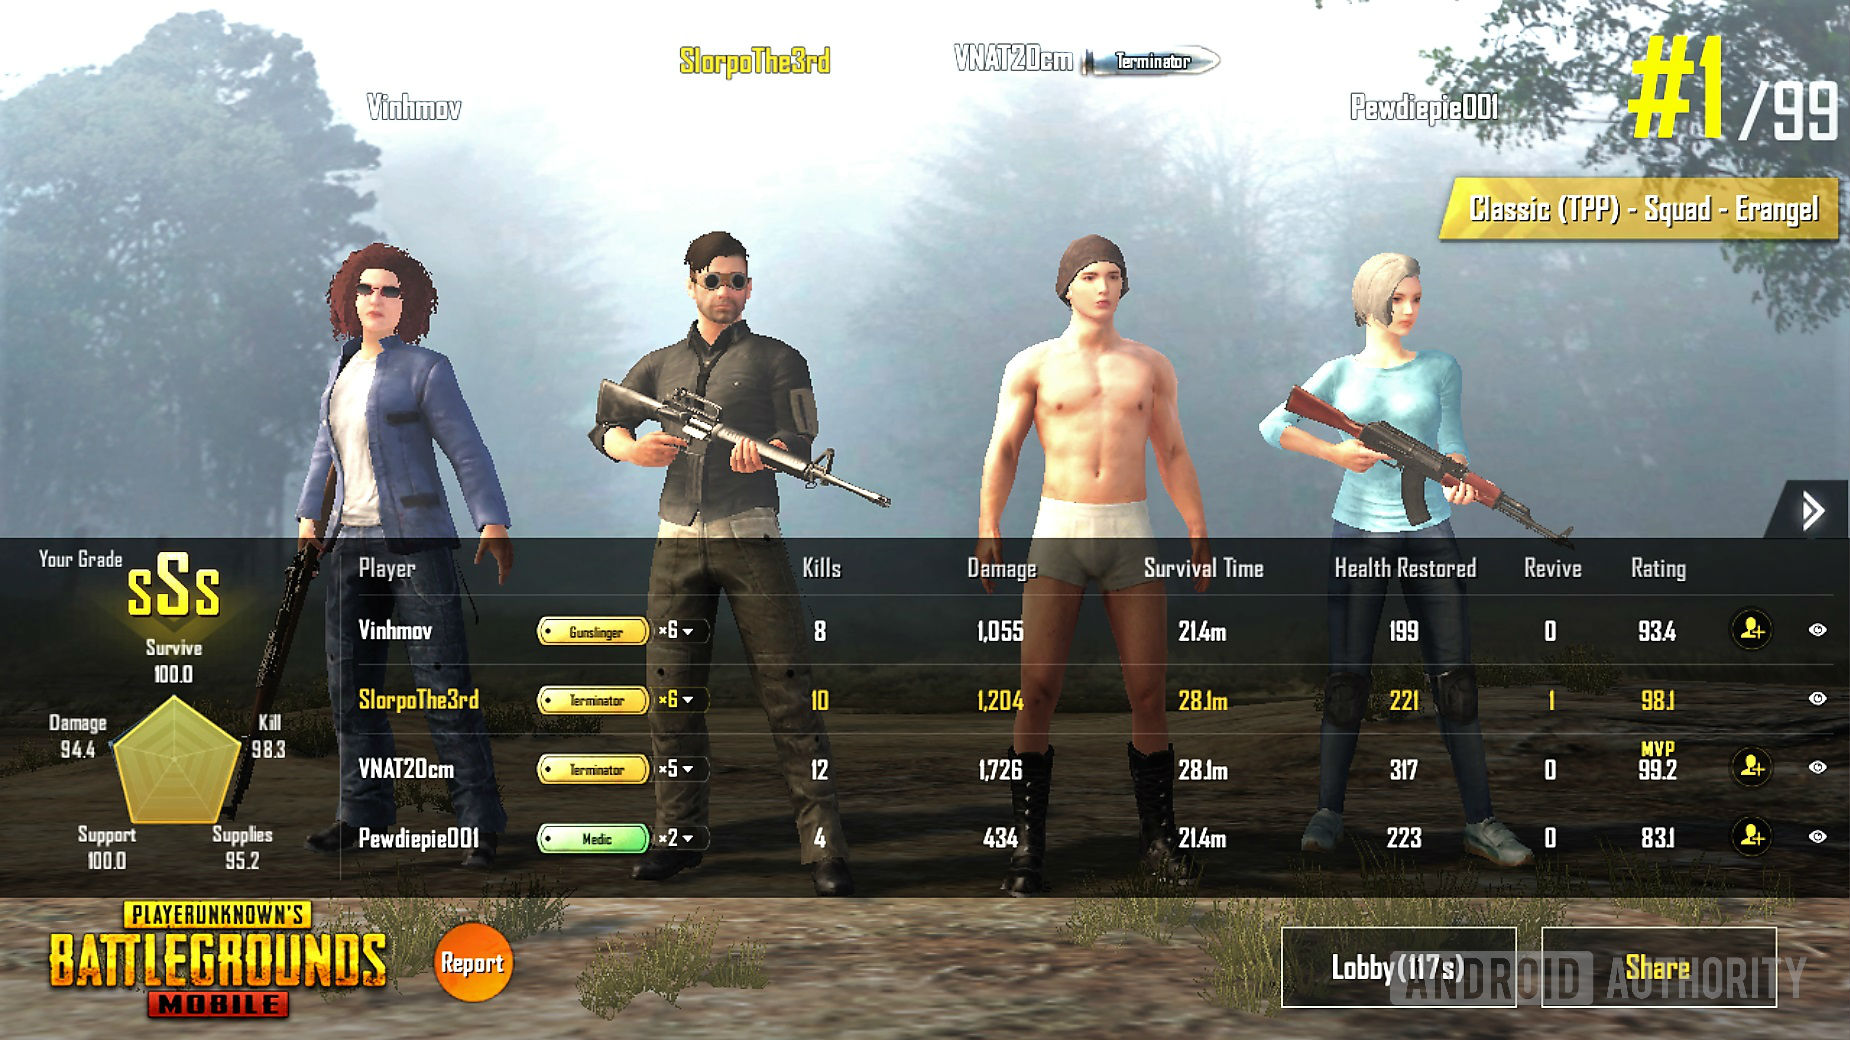 The Best PUBG Mobile Emulator Is Tencent Gaming Buddy